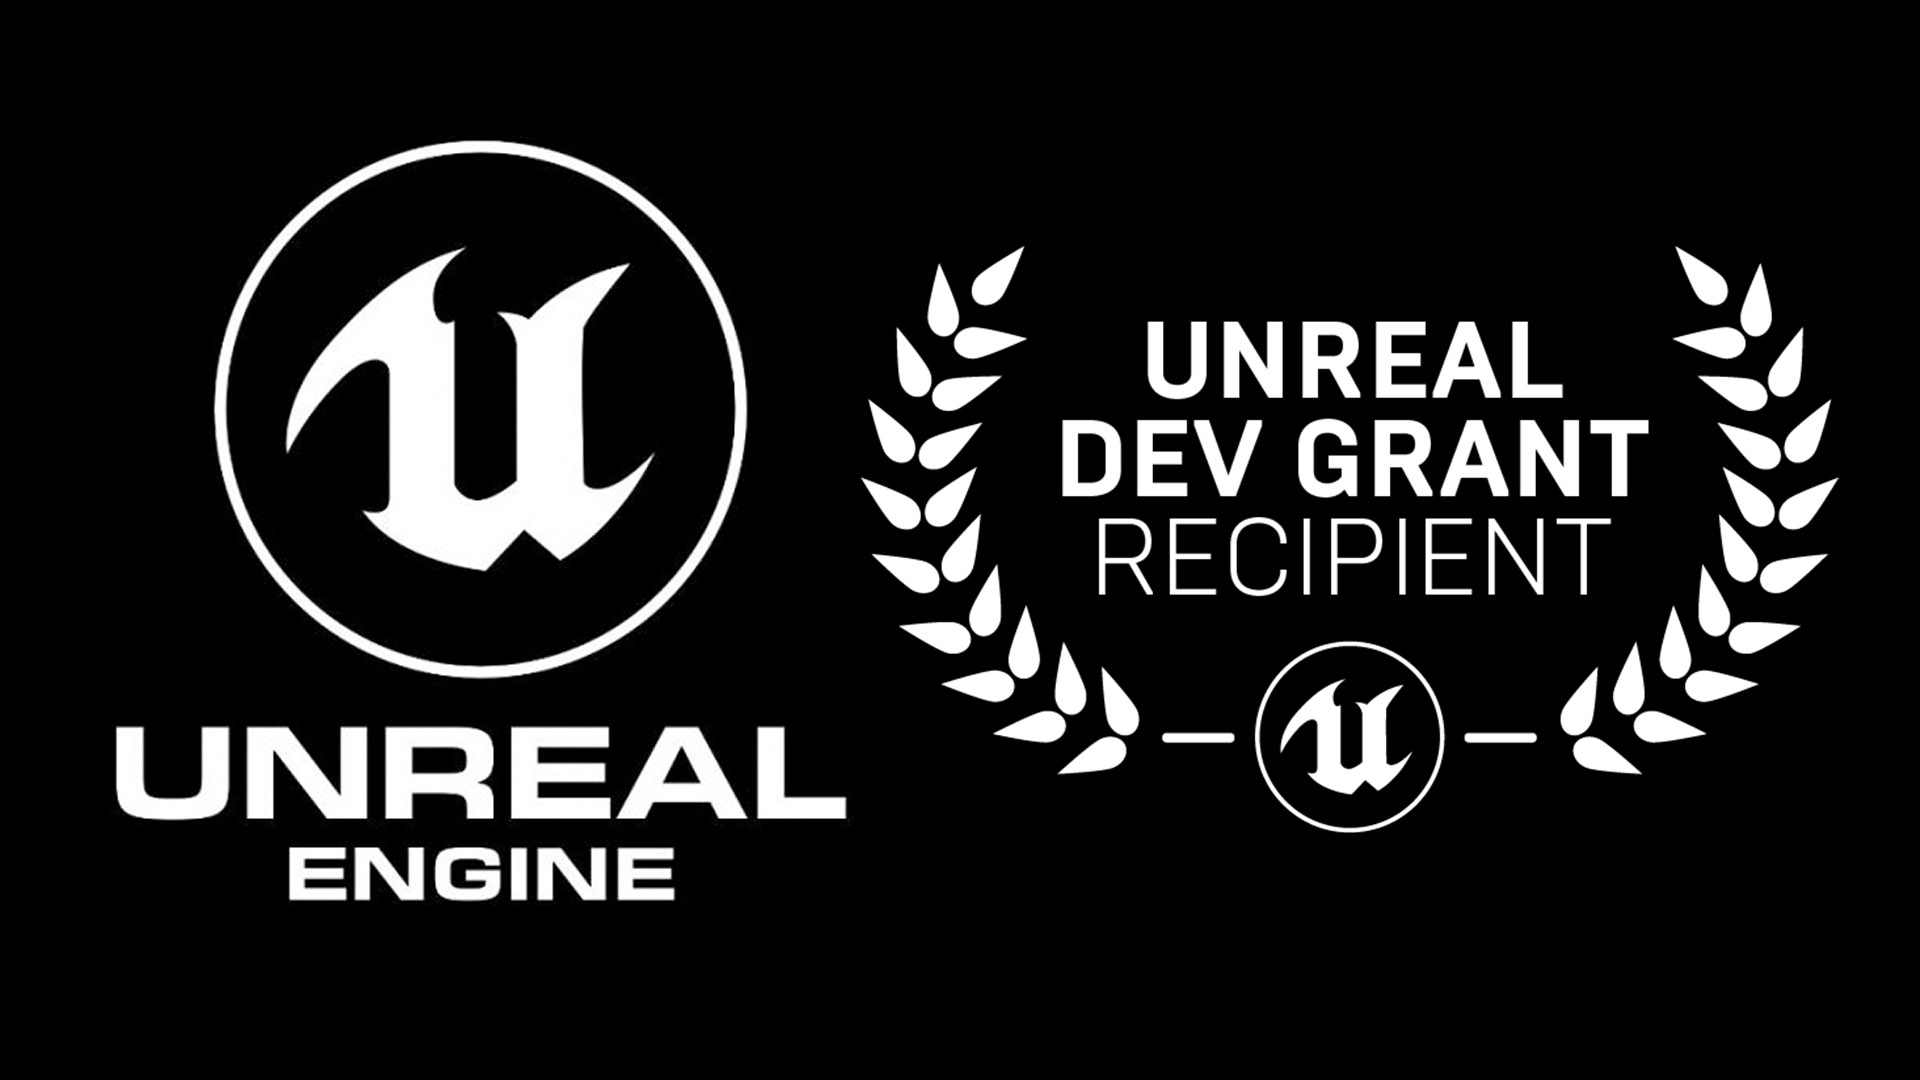 UnrealEngine DevelopmentGrant